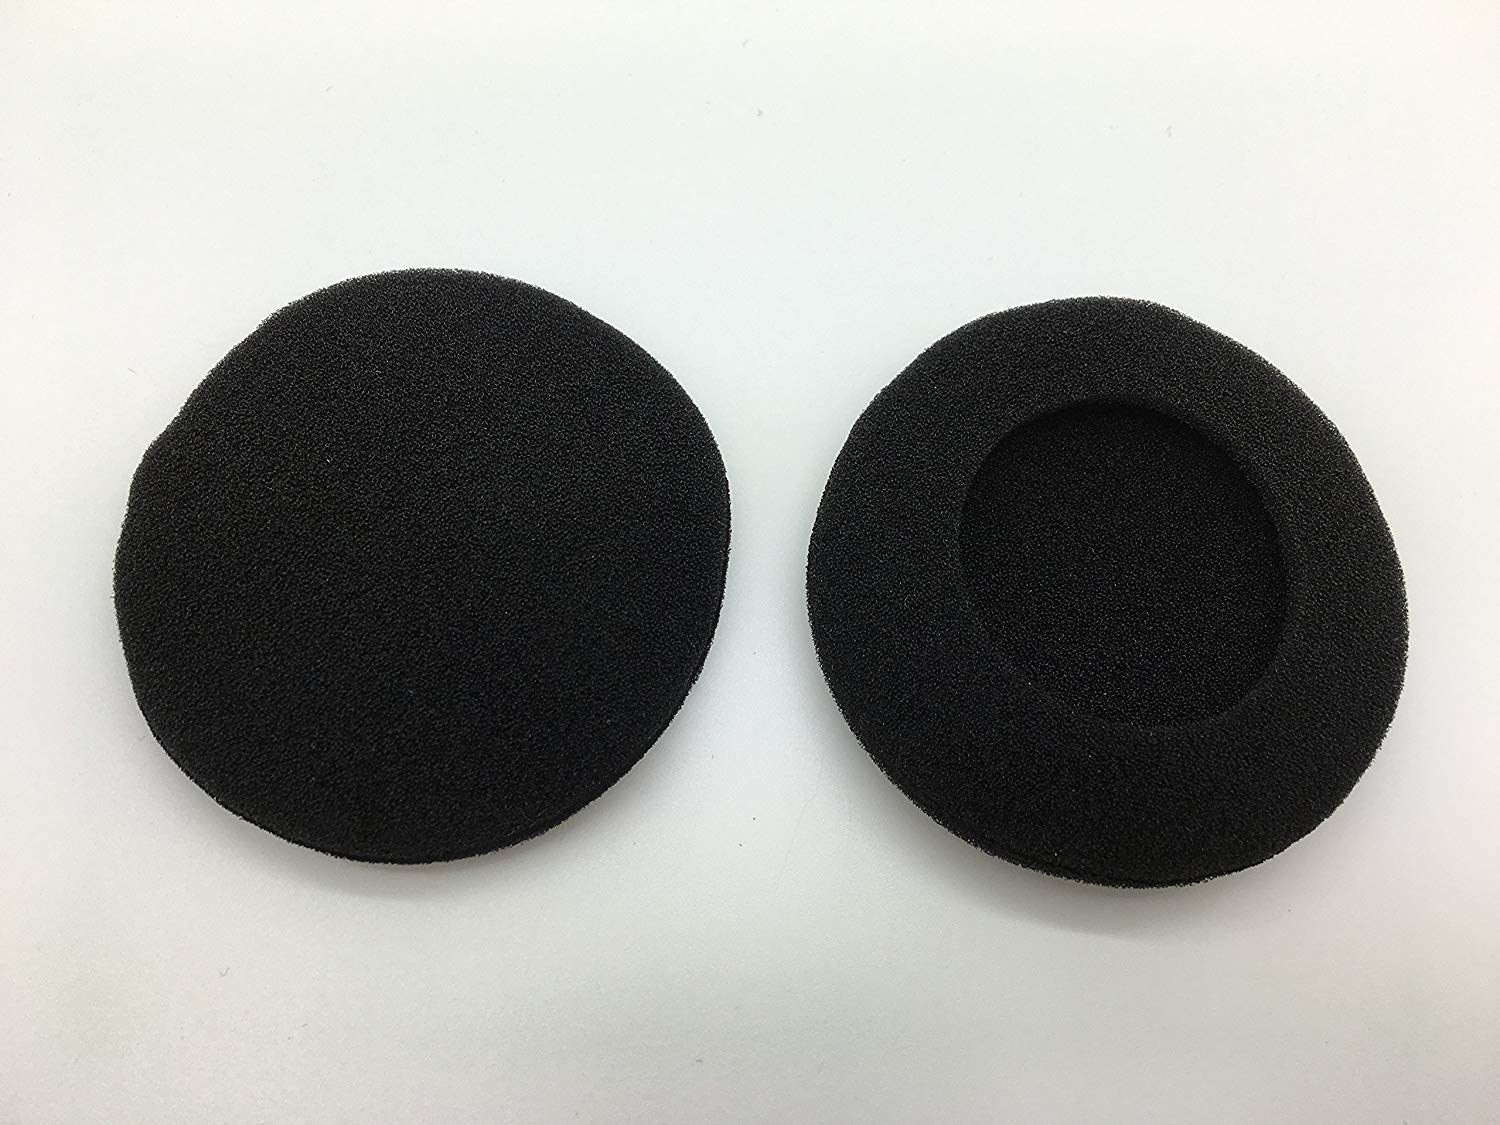 (1 Pair) Replacement Plantronics Foam Ear Pad Cushion for Plantronics Audio 310 470 478 628 USB Headsets 4330152113